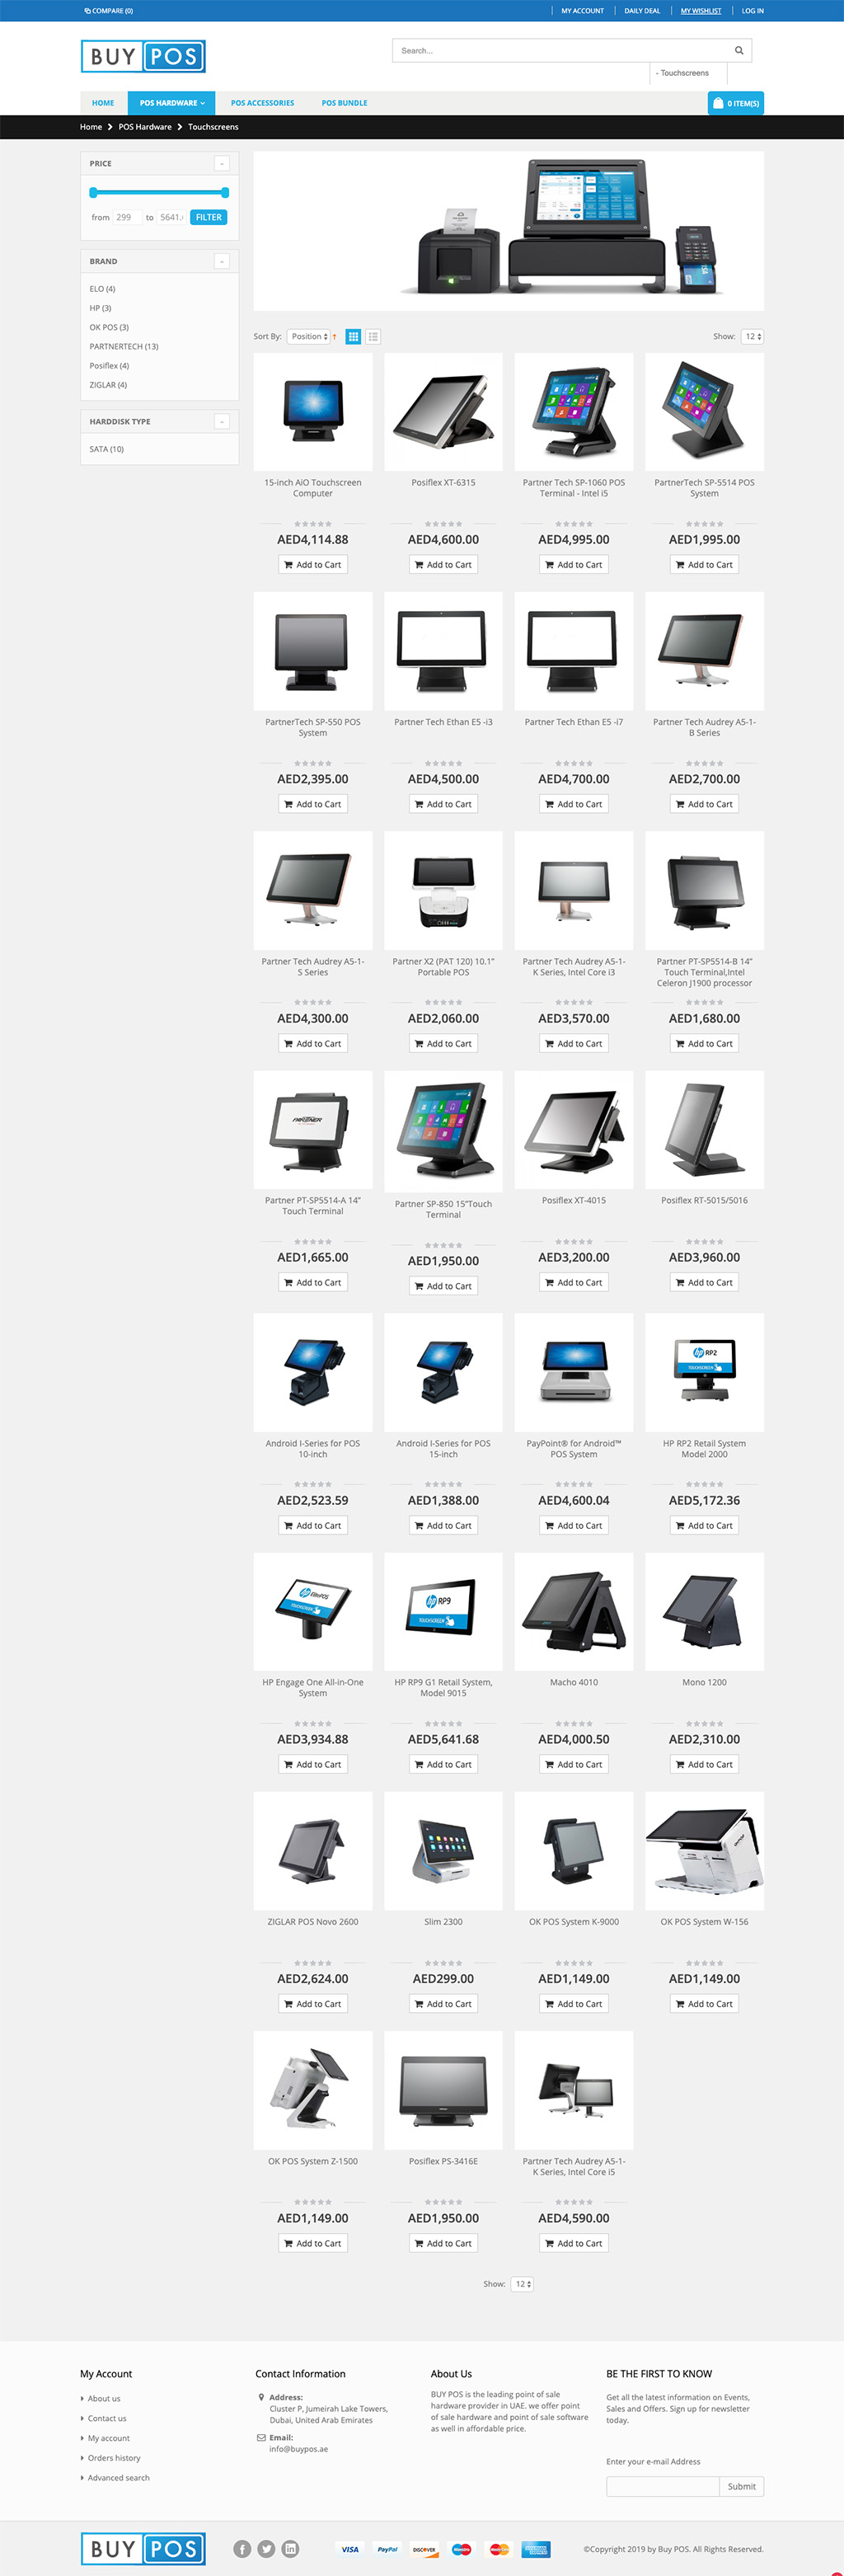 buypos hardware point of sale